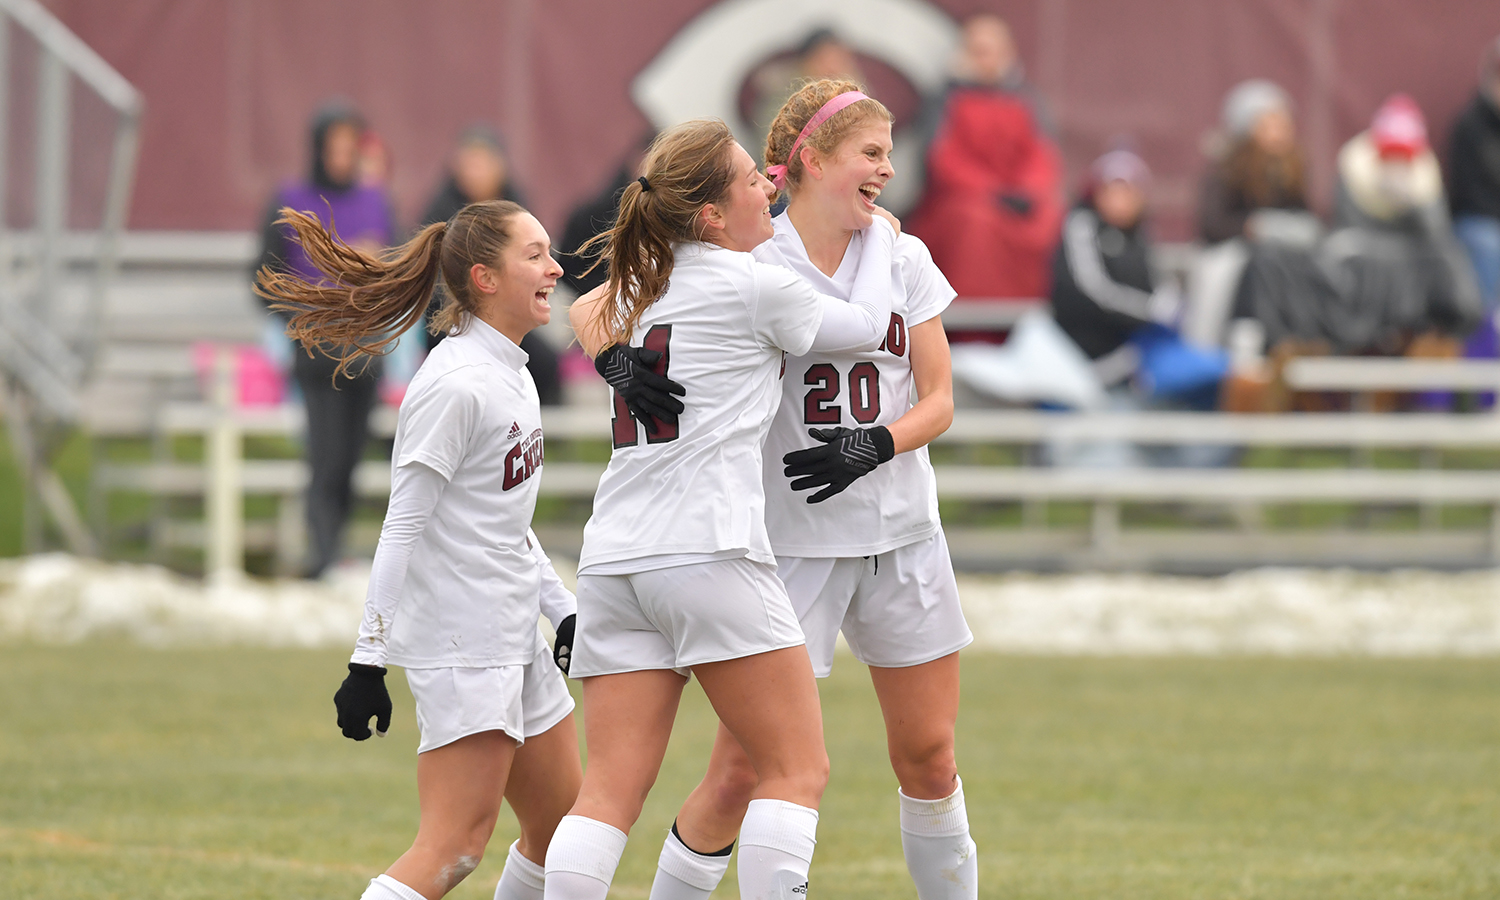 Maroon Women's Soccer Tops Augsburg 4-1 in NCAA Second Round Game